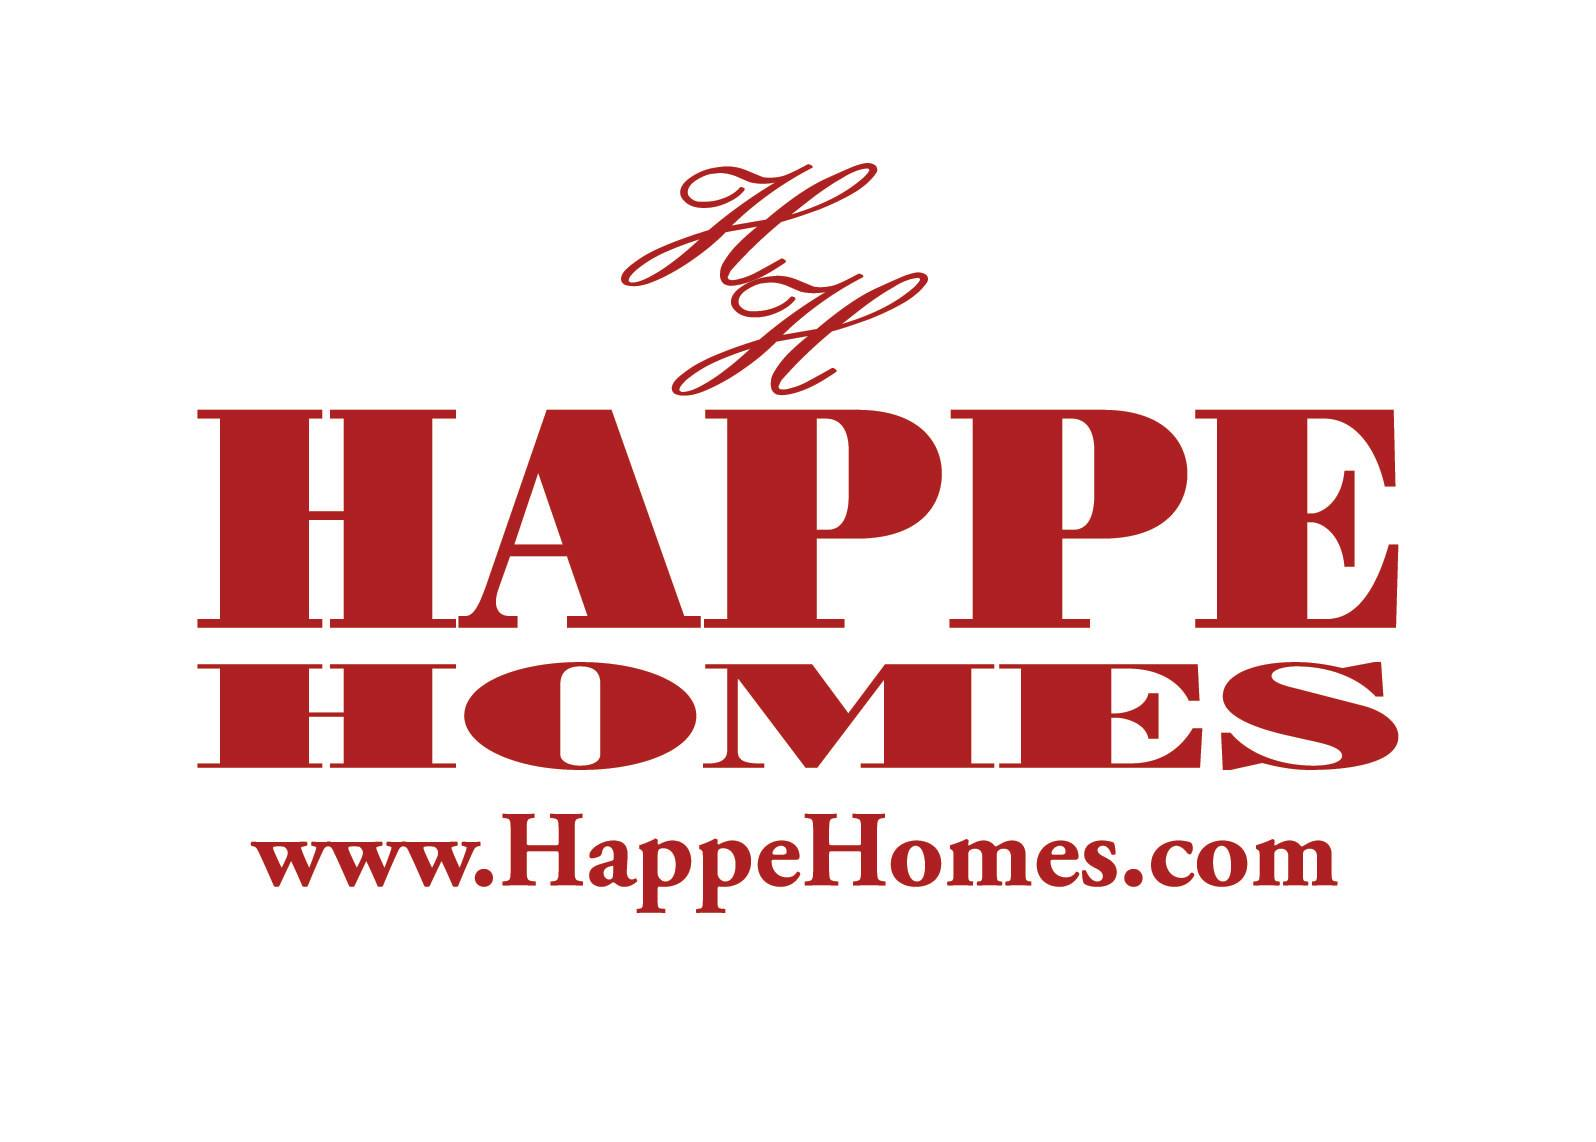 Happe Homes logo